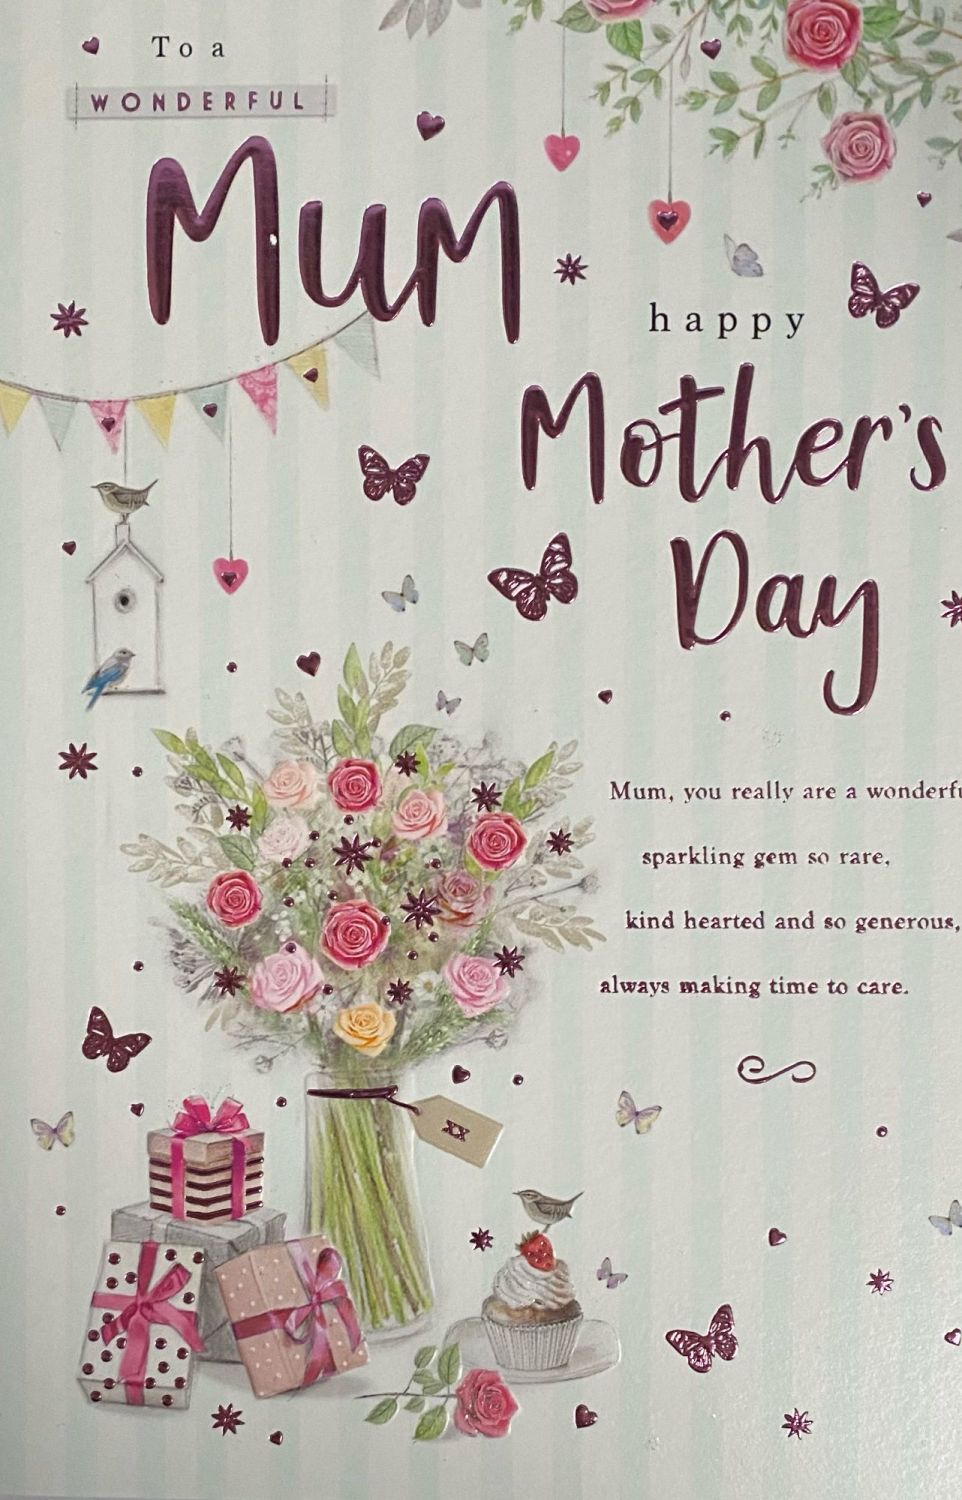 To A Wonderful Mum Happy Mother's Day - Card